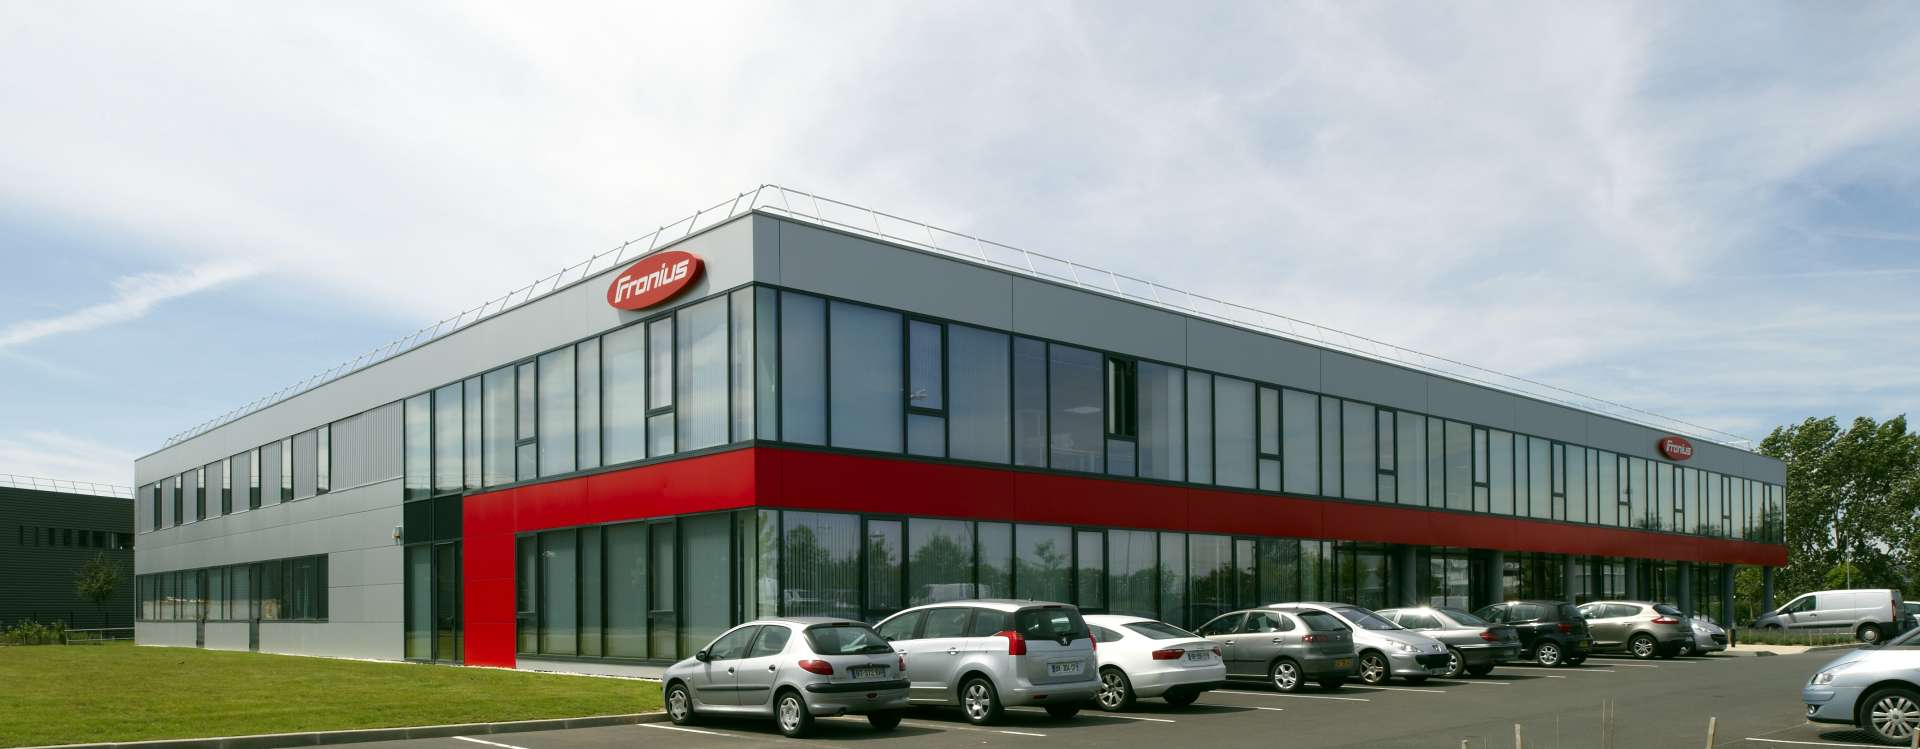 Fronius in Roissy, innovative industrial real estate